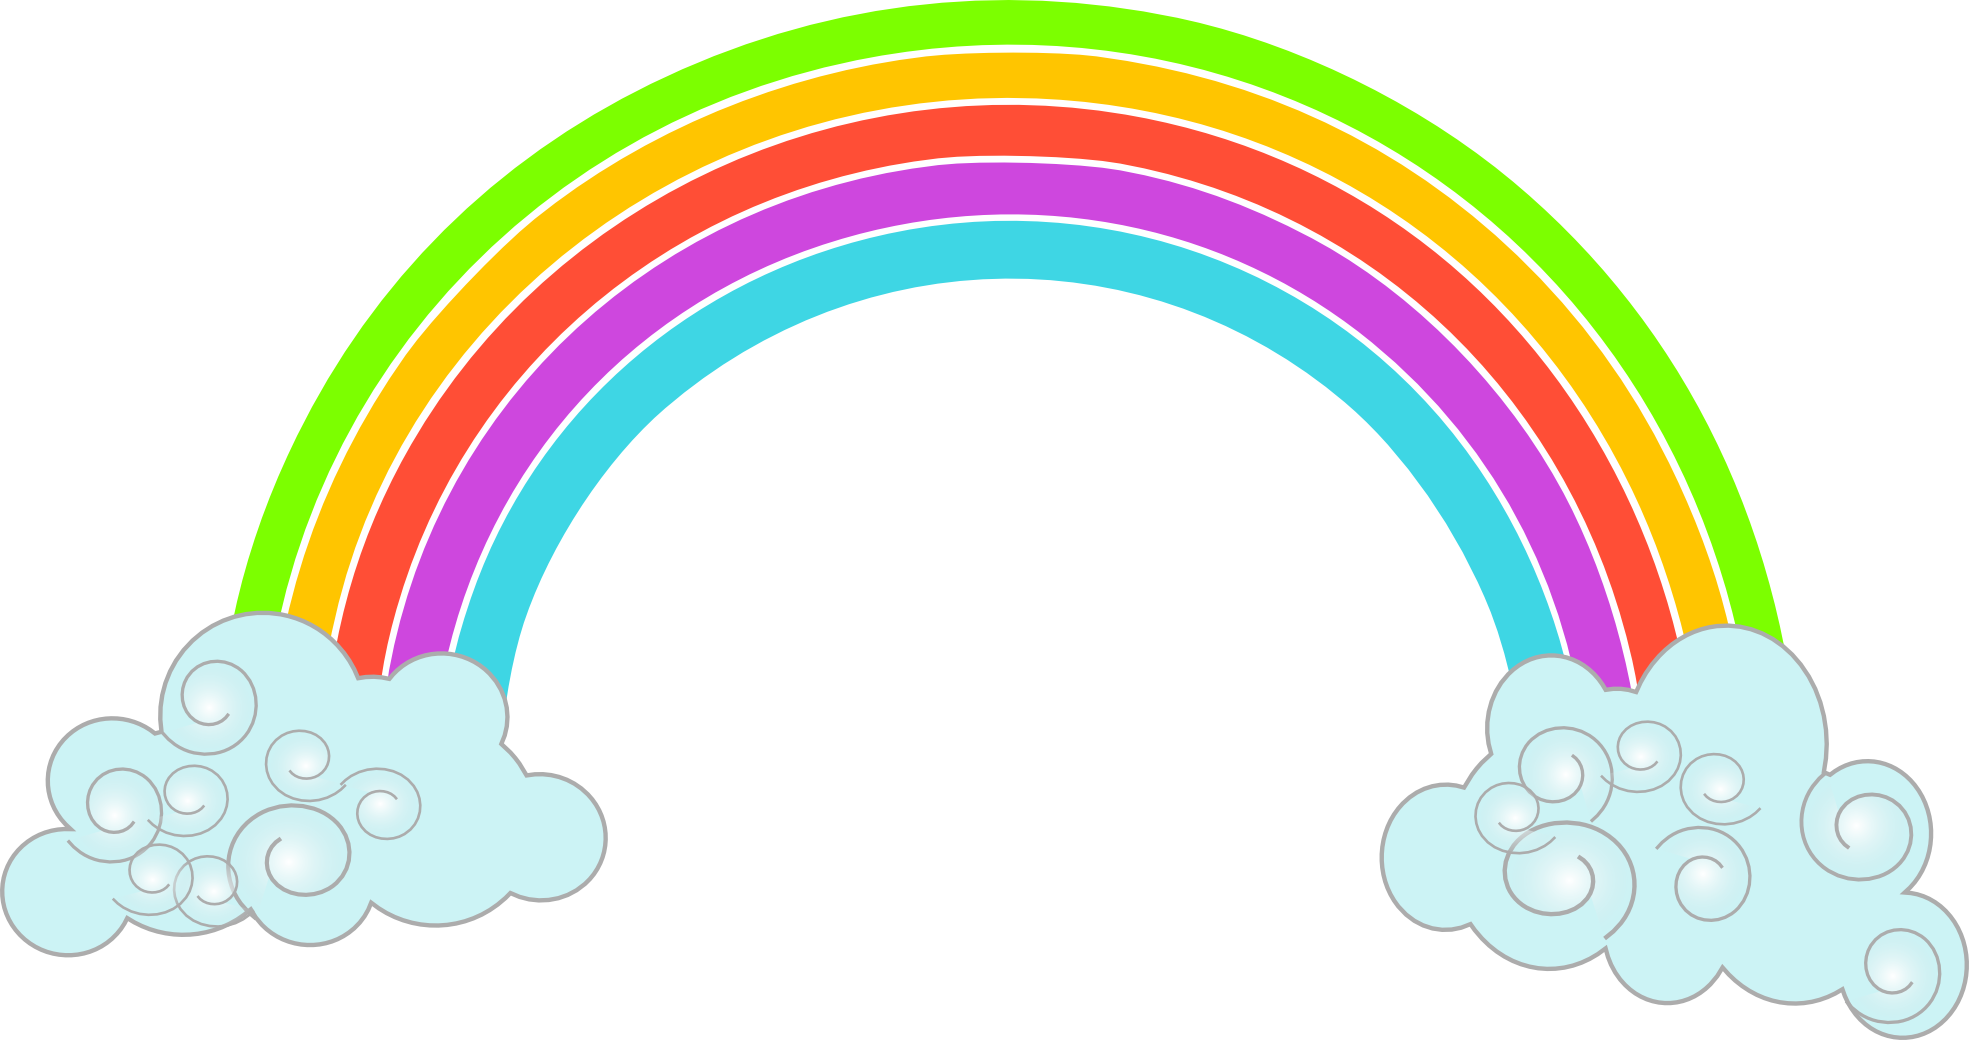 Rainbow with sun clipart free Rainbow Clipart Png Image Transparent Free Download | jokingart.com ... free